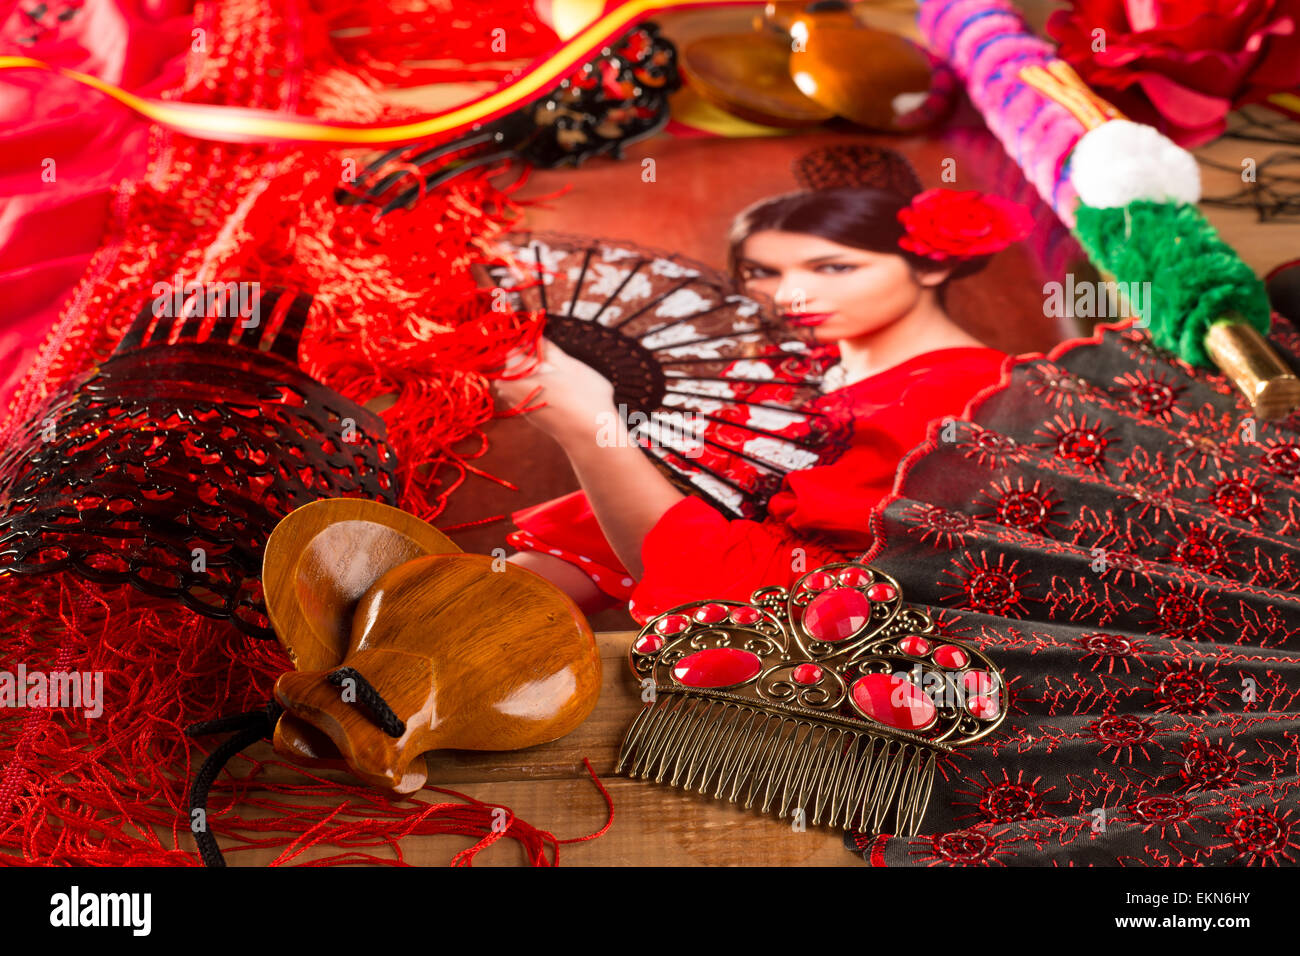 Flamenco woman with bullfighter and typical Spain Espana - Stock Image